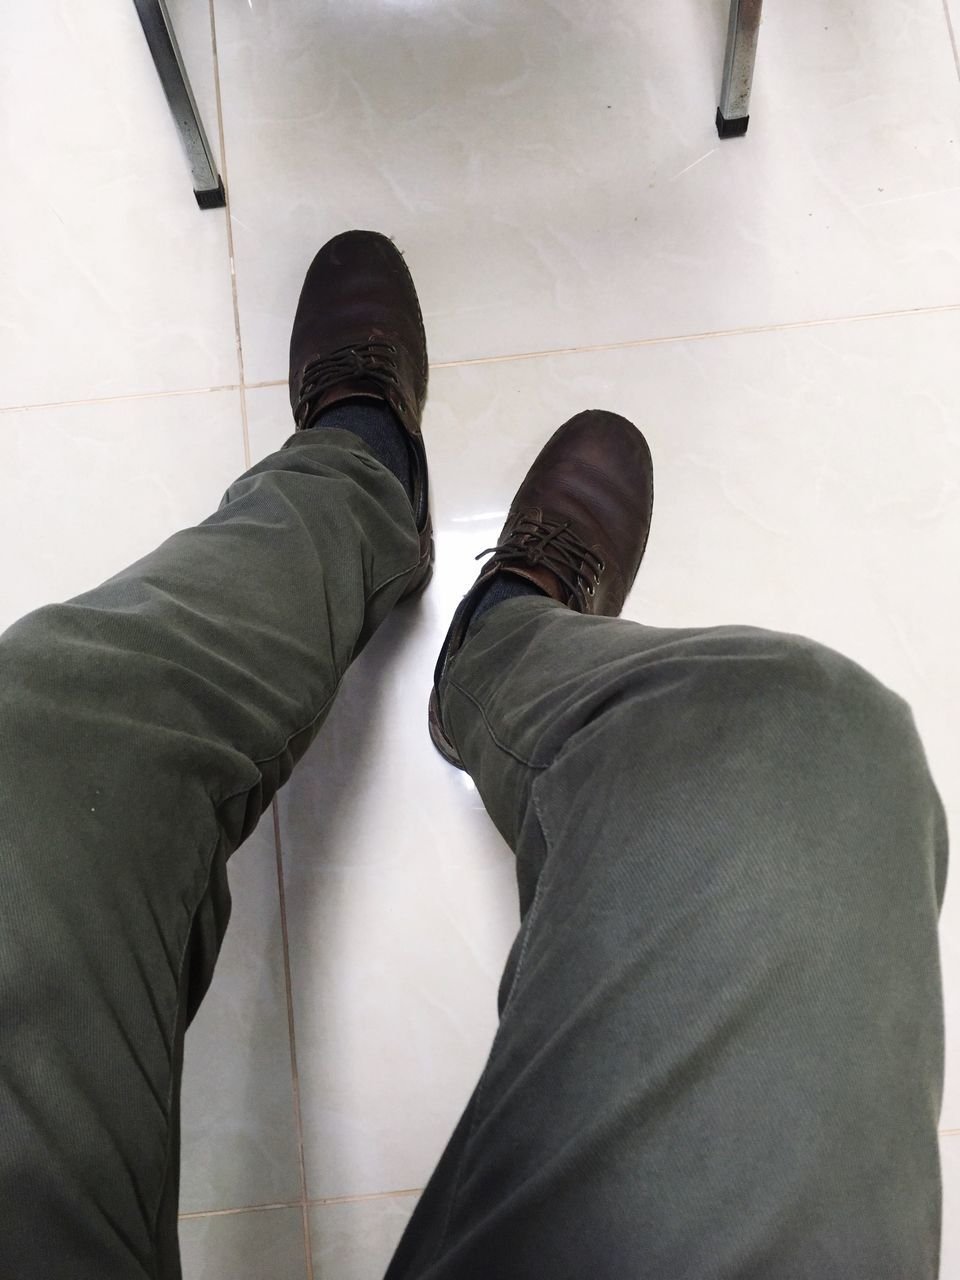 shoe, low section, human leg, standing, one person, personal perspective, real people, men, jeans, human body part, indoors, day, close-up, one man only, people